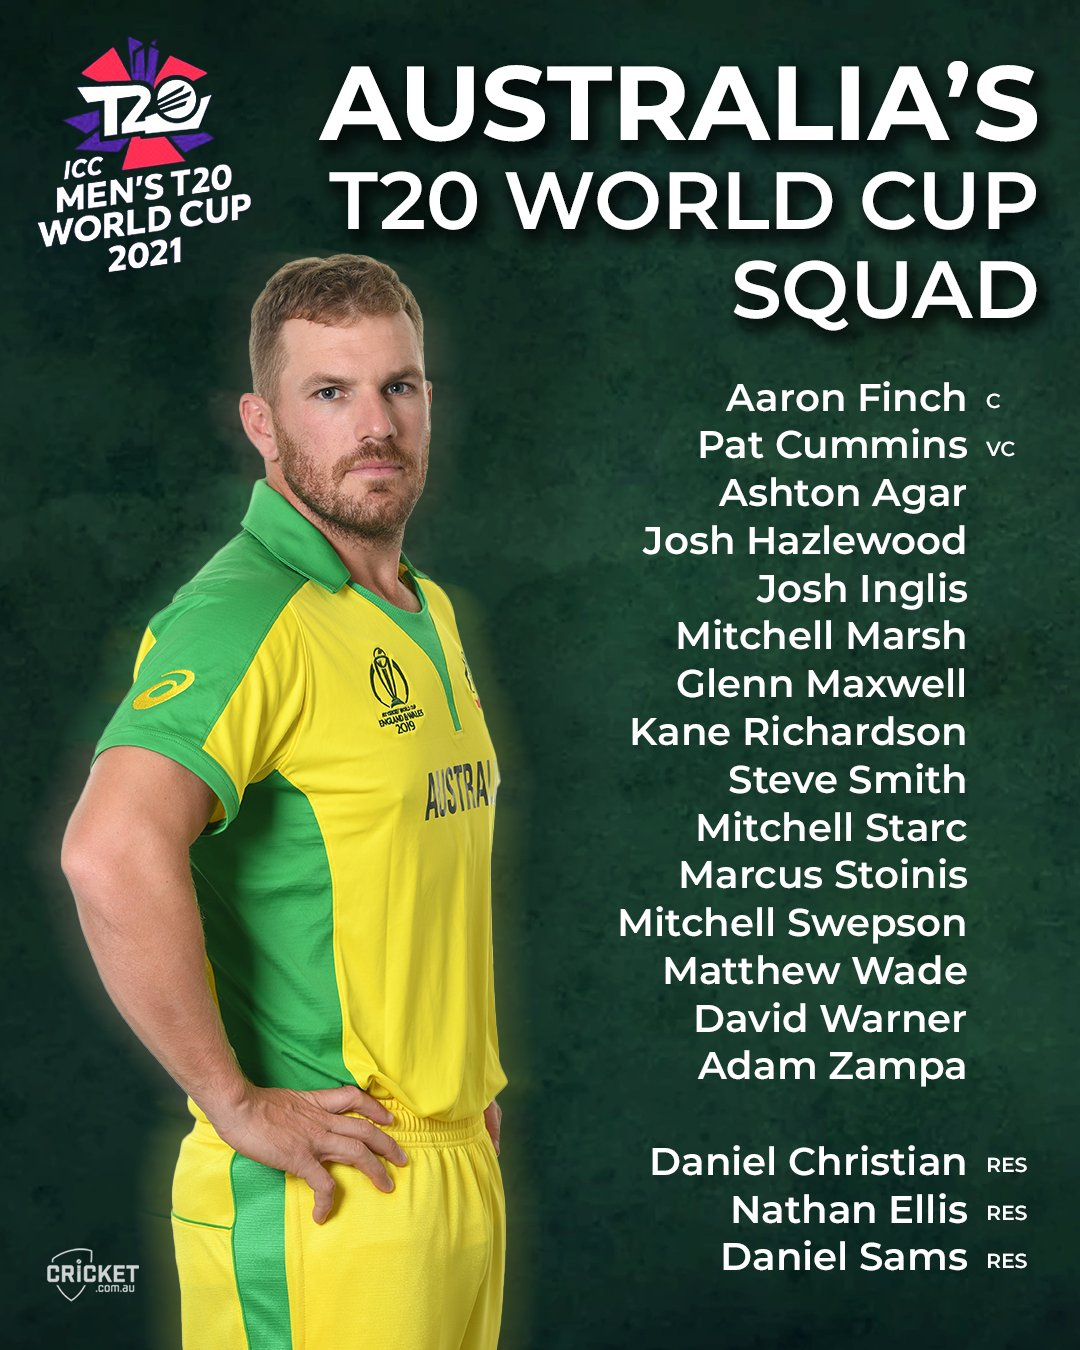 Australia Announce the Squad for 2021 T20 World Cup;